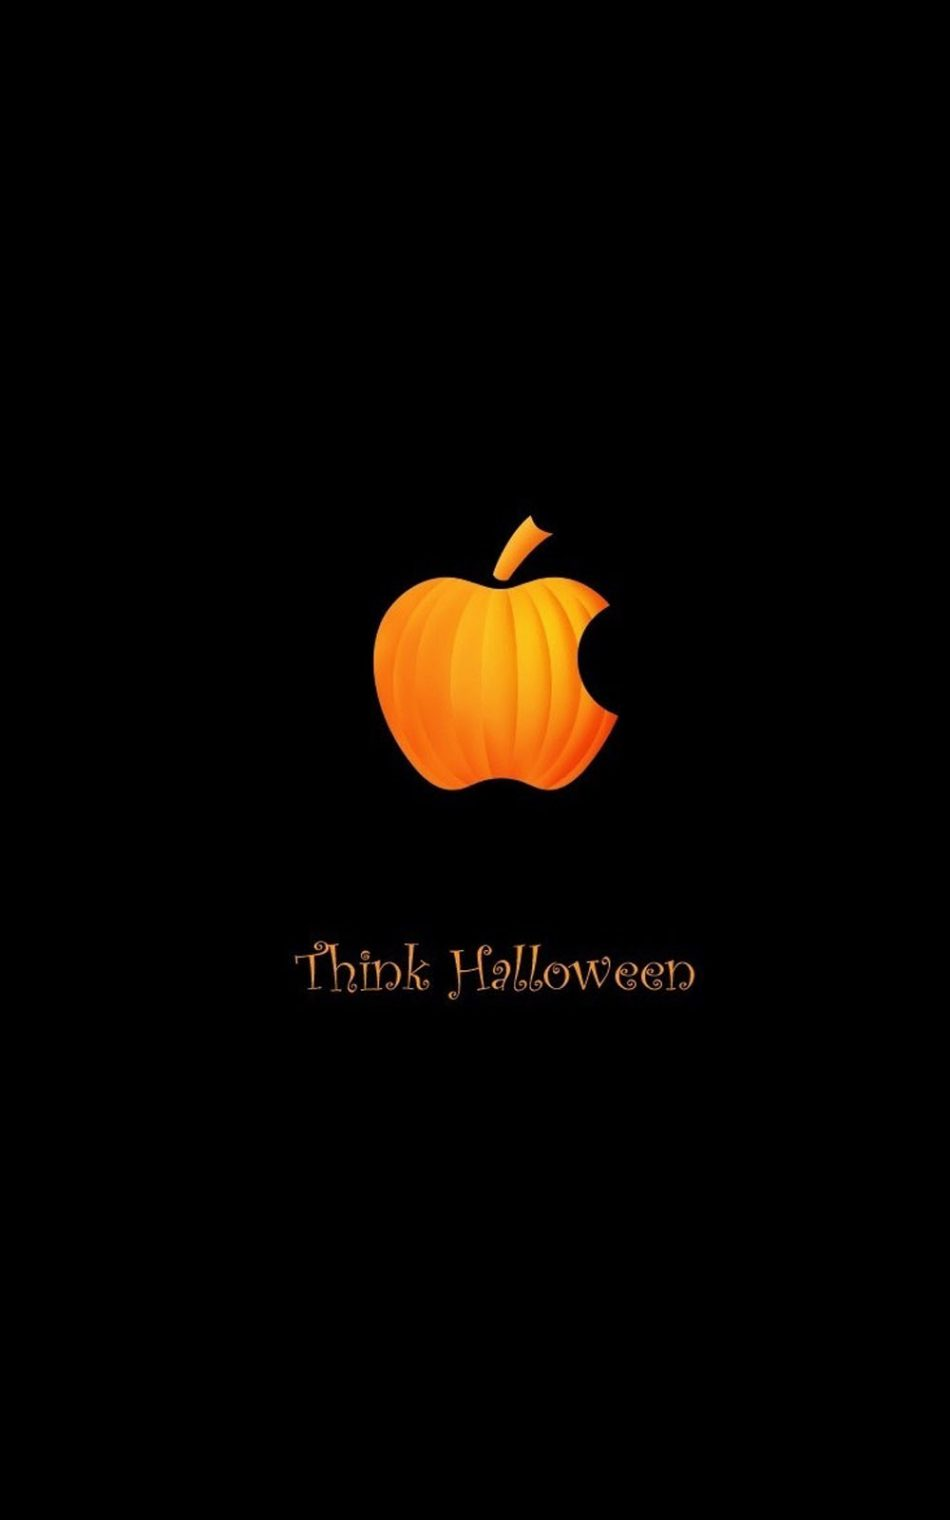 Must see Wallpaper Halloween Mobile Phone - Think-Halloween-HD-Mobile-Wallpaper-950x1520  Pictures_603489.jpg